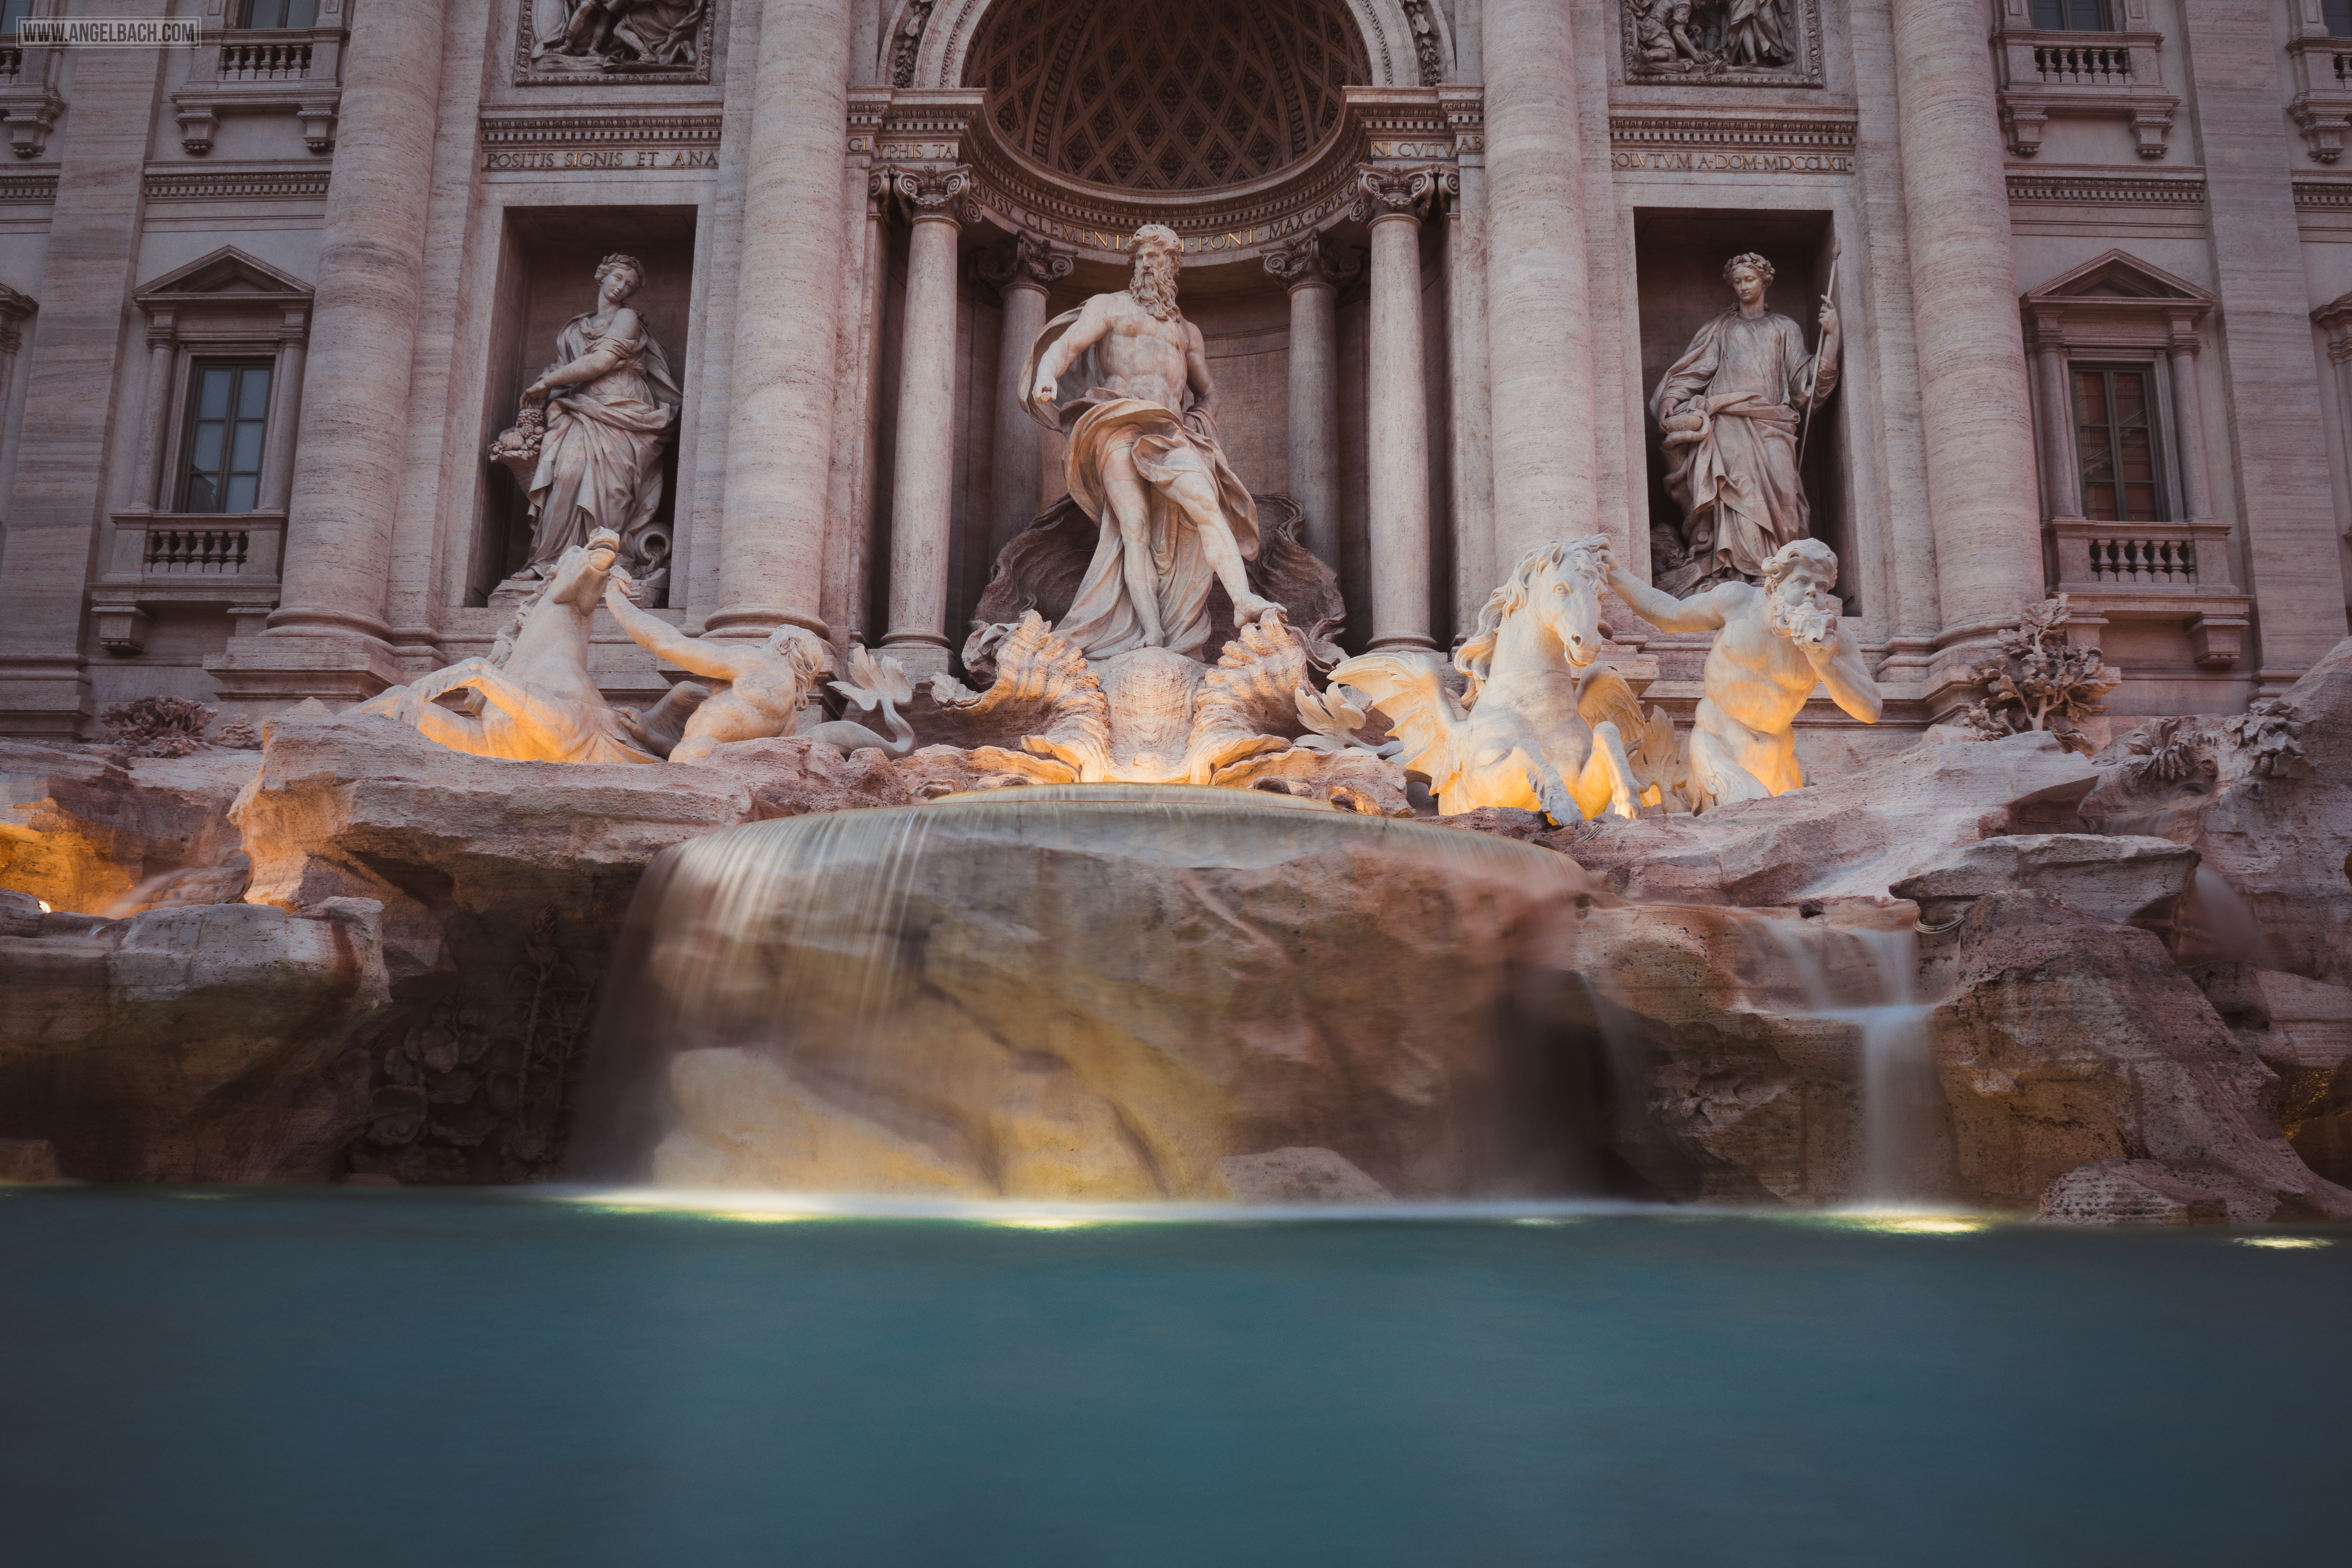 Rome, Cityscape, Leading lines, Street photography, Architecture Photography, Ancient Rome, Trevi Fountain